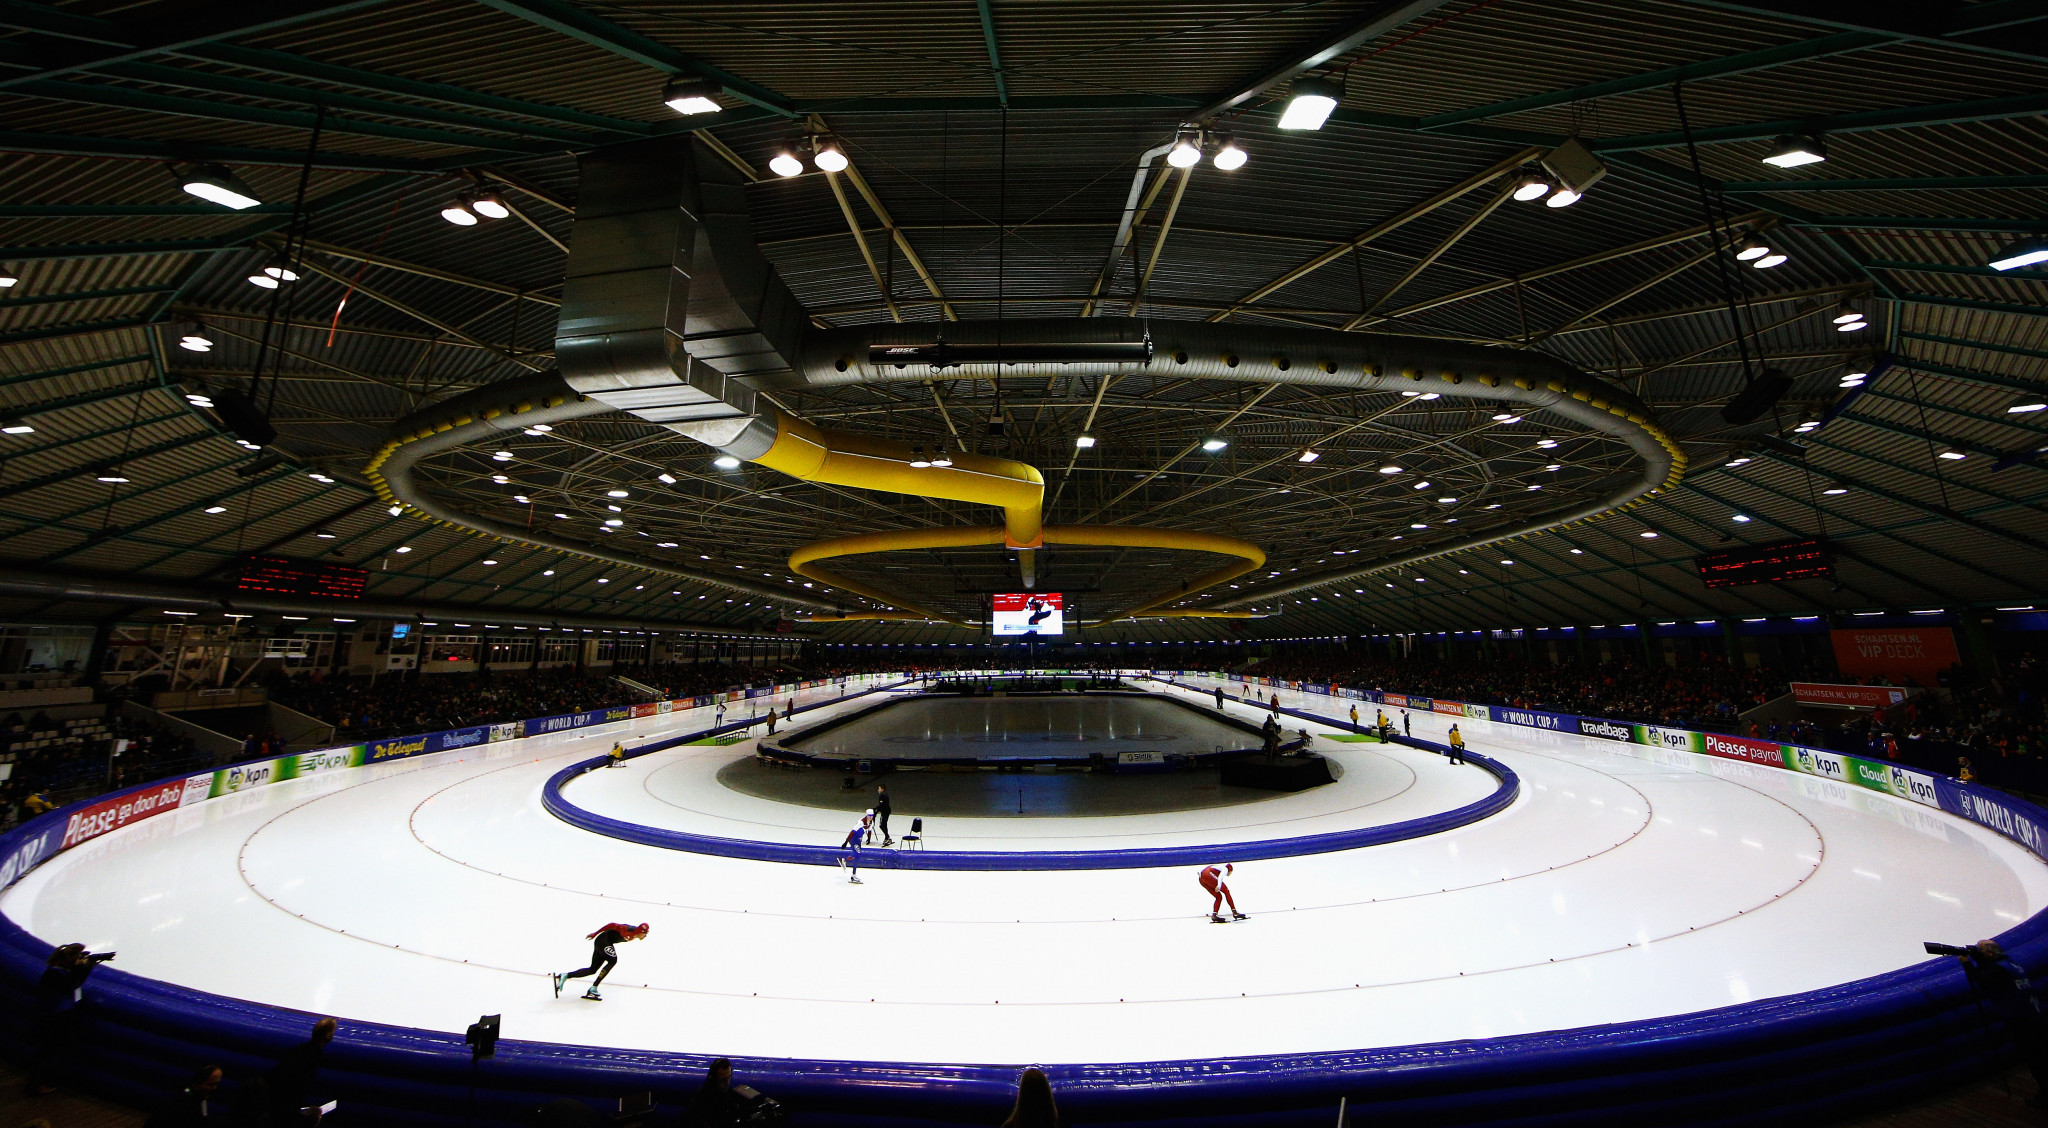 Heerenveen has been named as host of the 2023 World Speed Skating Championships ©Getty Images